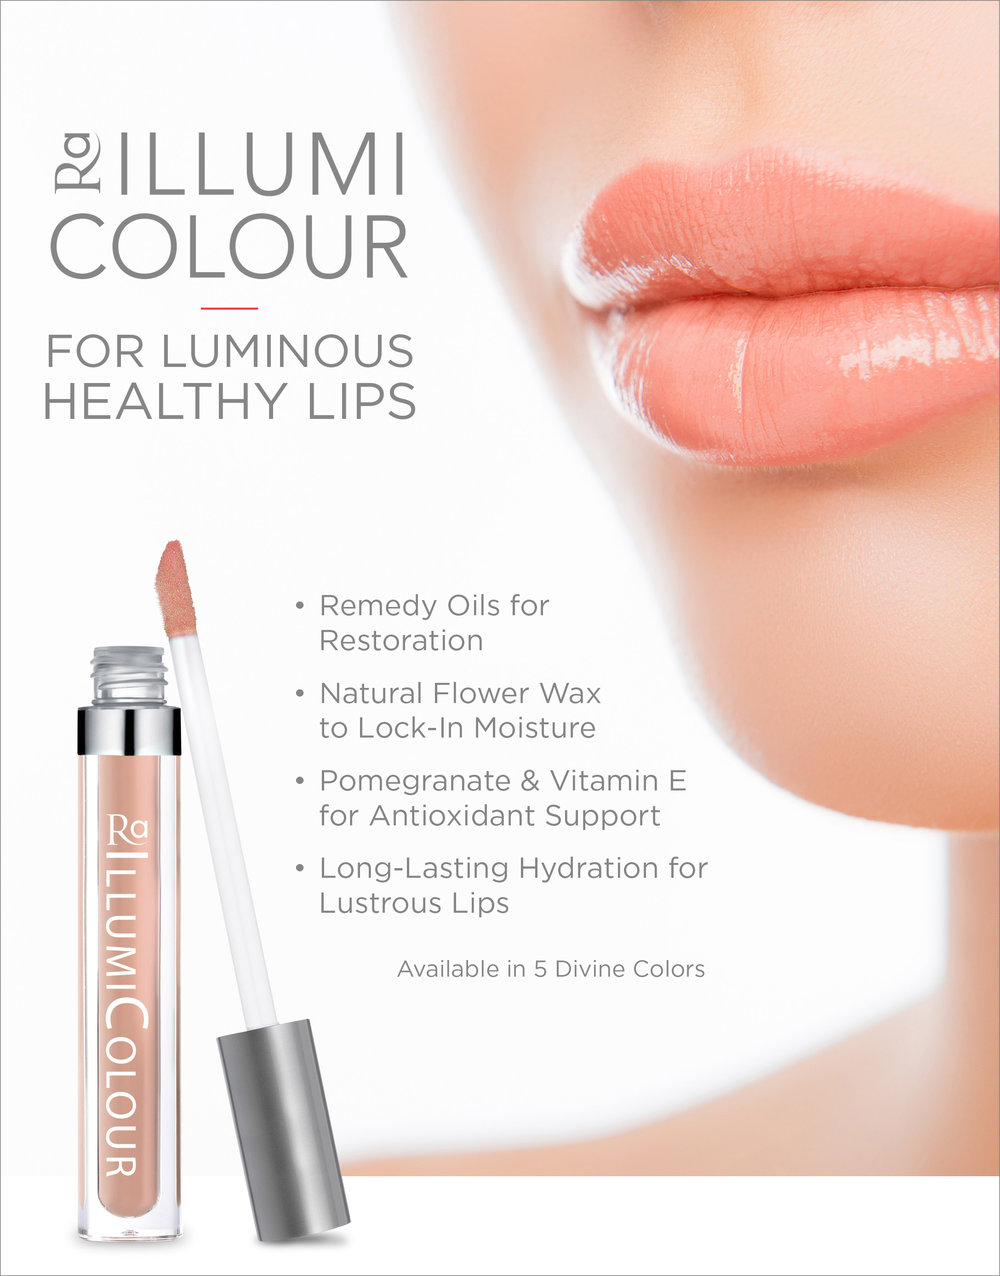 Introducing IllumiColour Lip Gloss! - available in 5 shades!Now not only will you have glowing skin, you'll have hydrated plump and pretty lips to match! New at Spa Lux - IllumiColour Lip Gloss!!Jump over to our Facebook page to like, share and join the contest to win one of the 5 NEW beautiful lip gloss colors.